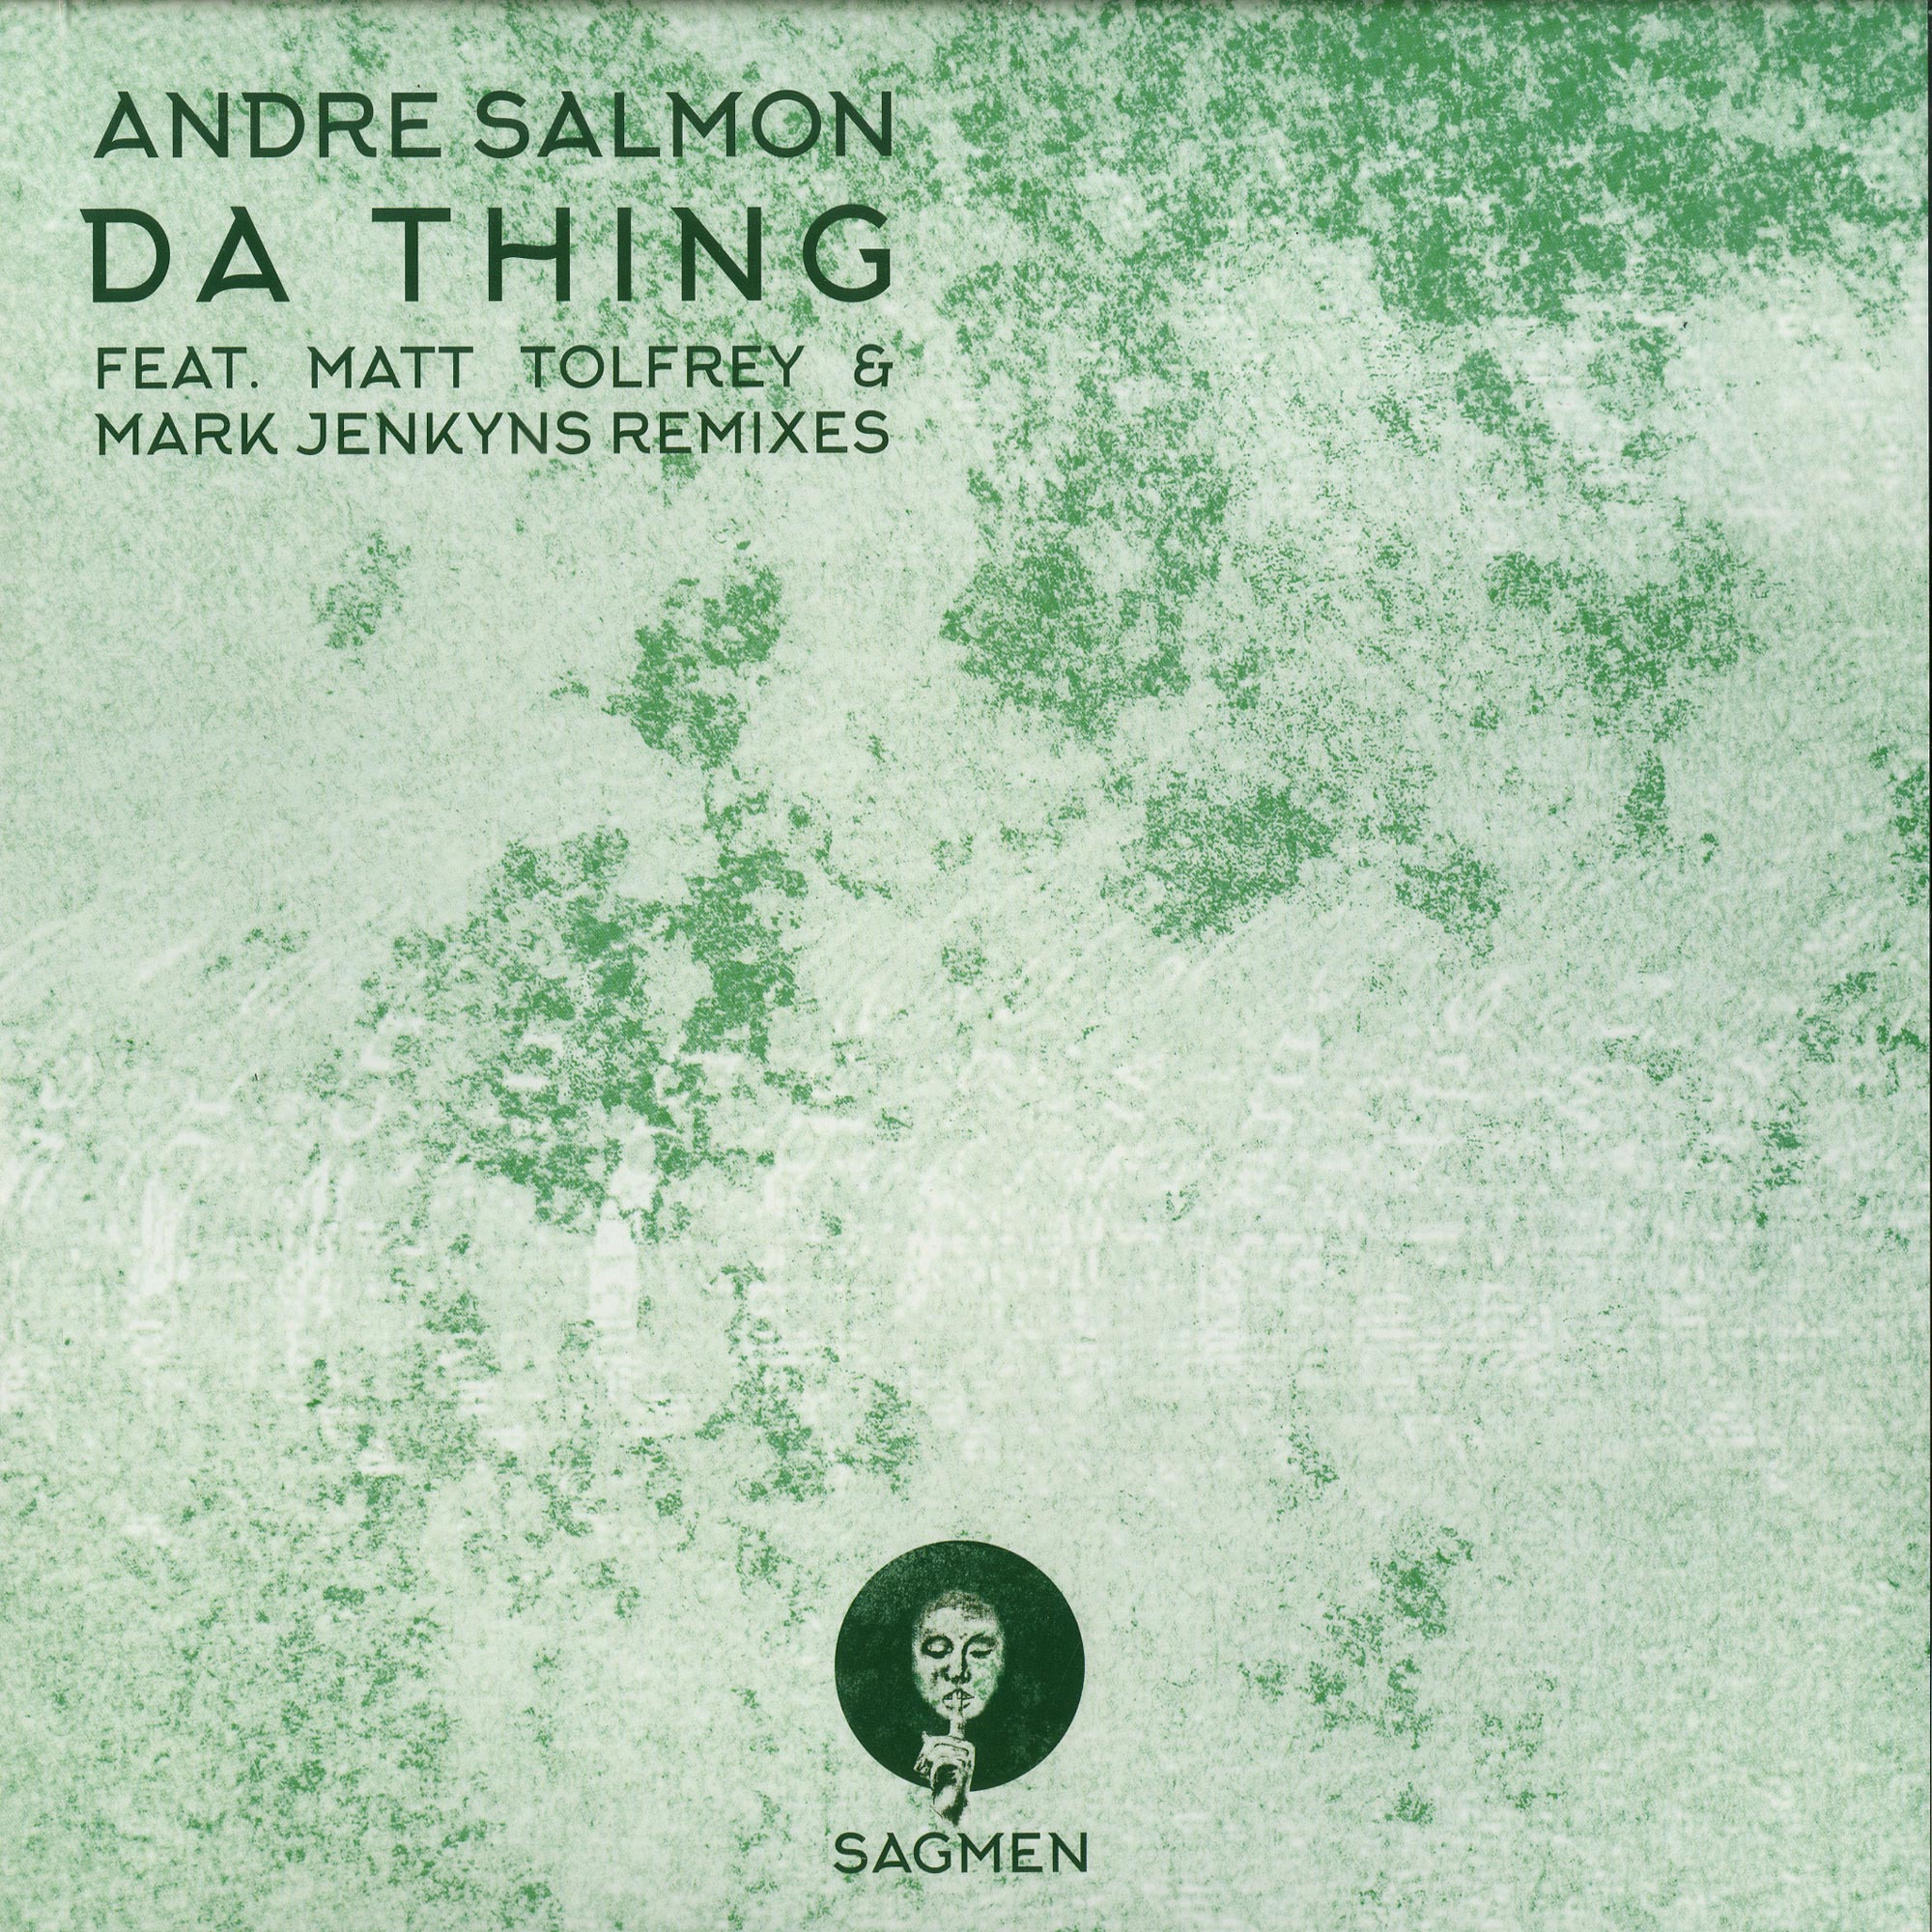 Andre Salmon - DA THING EP